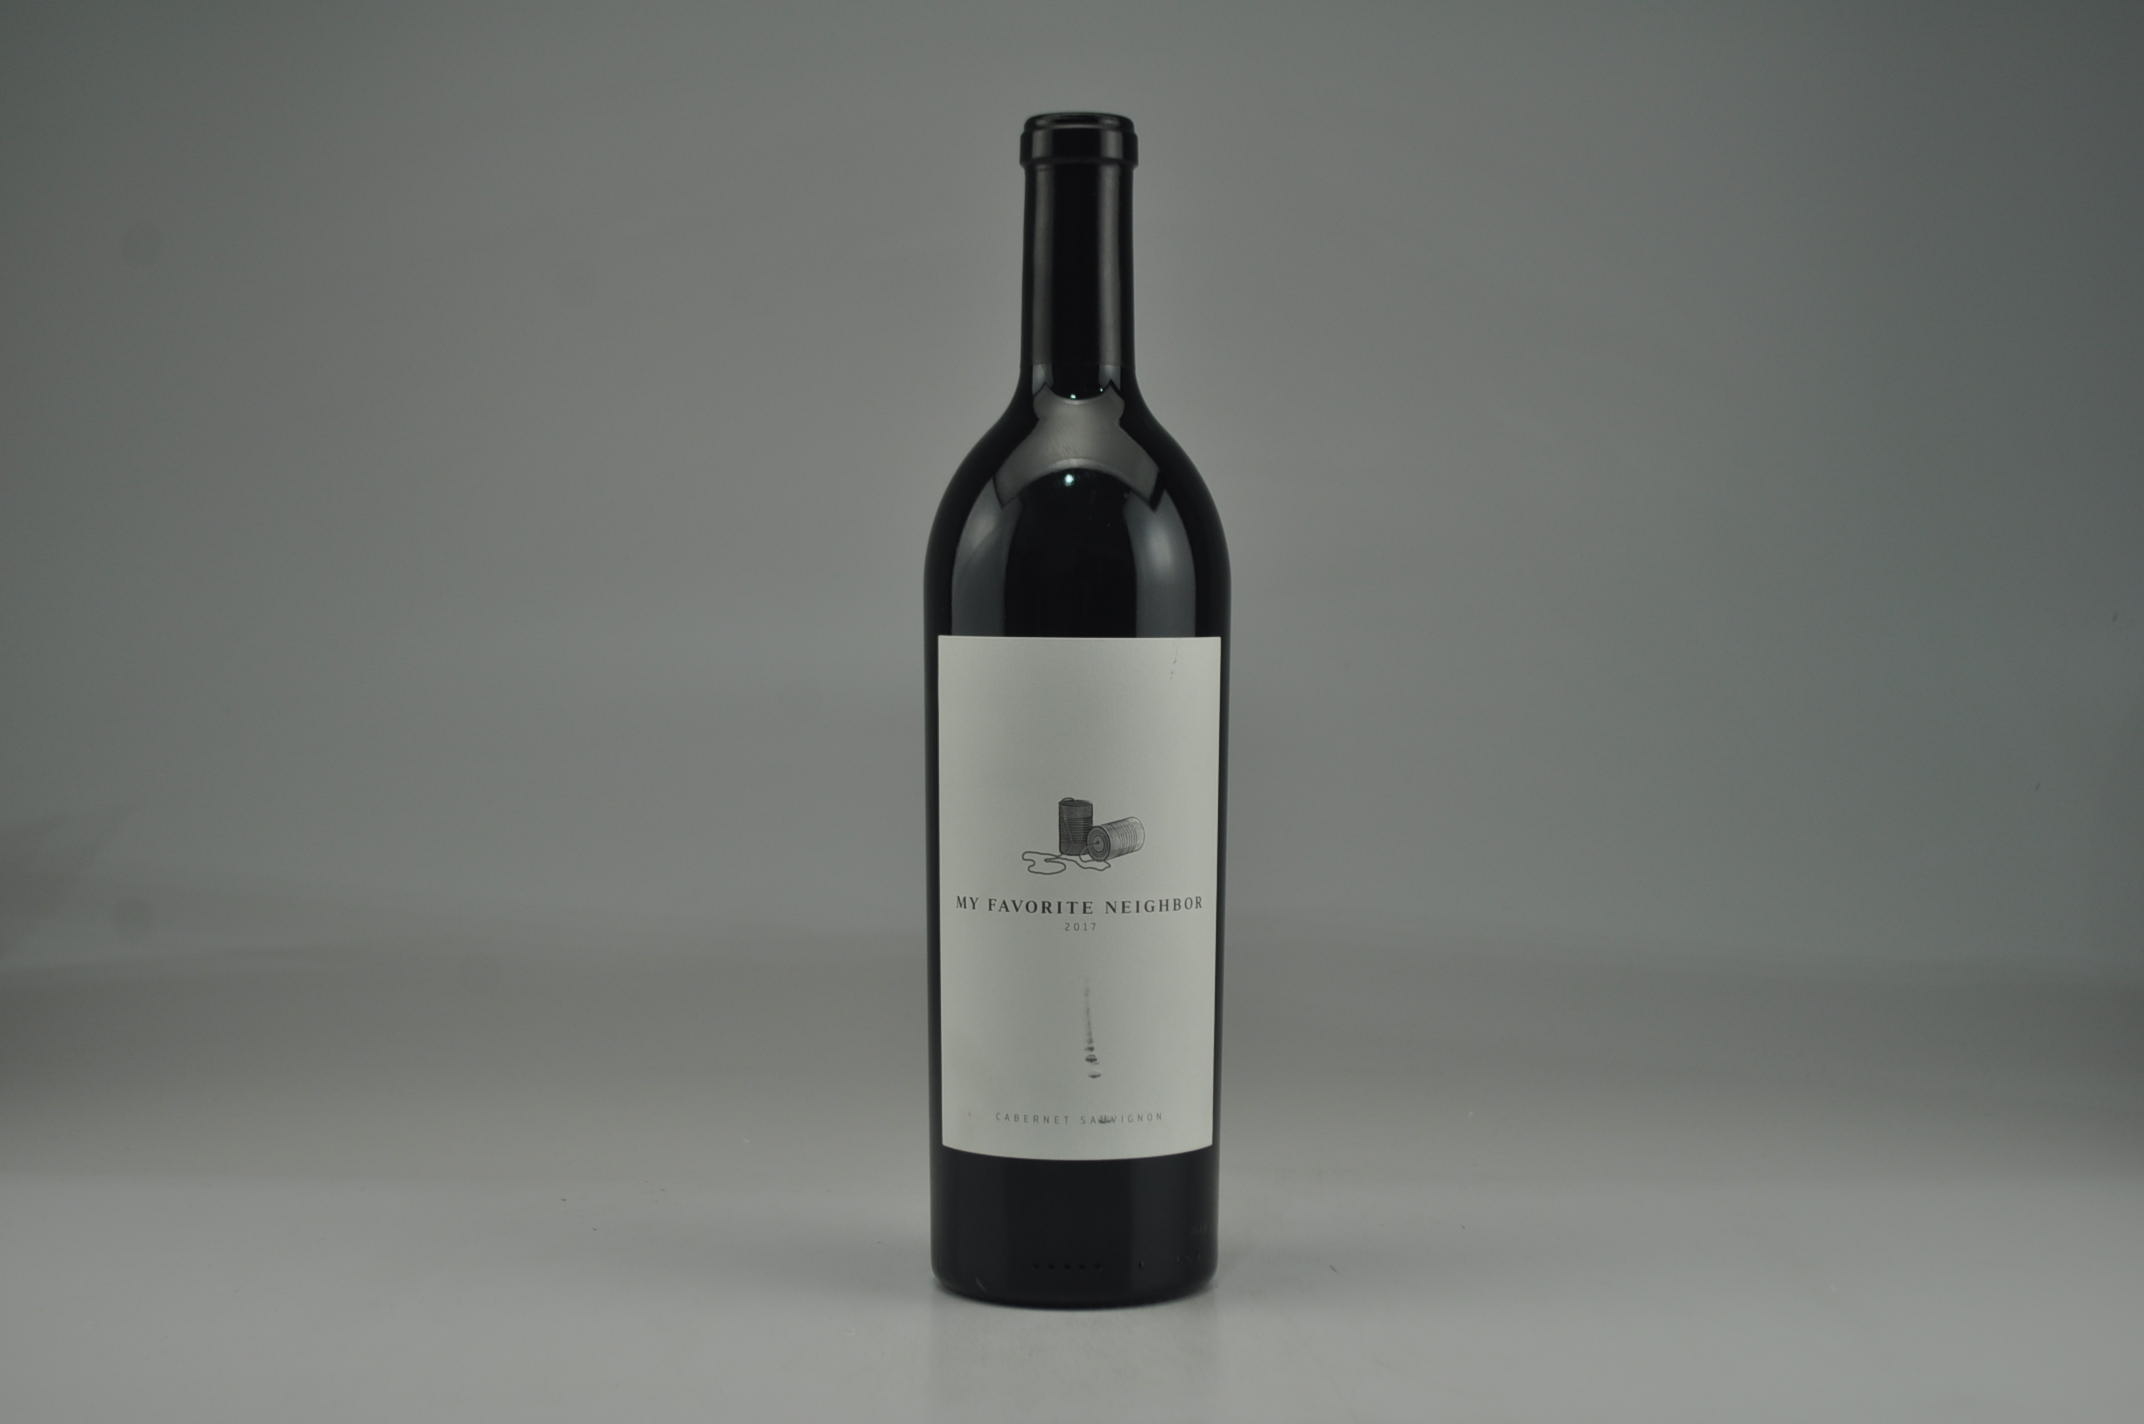 2017 Booker Vineyard My Favorite Neighbor Cabernet Sauvignon Other--96